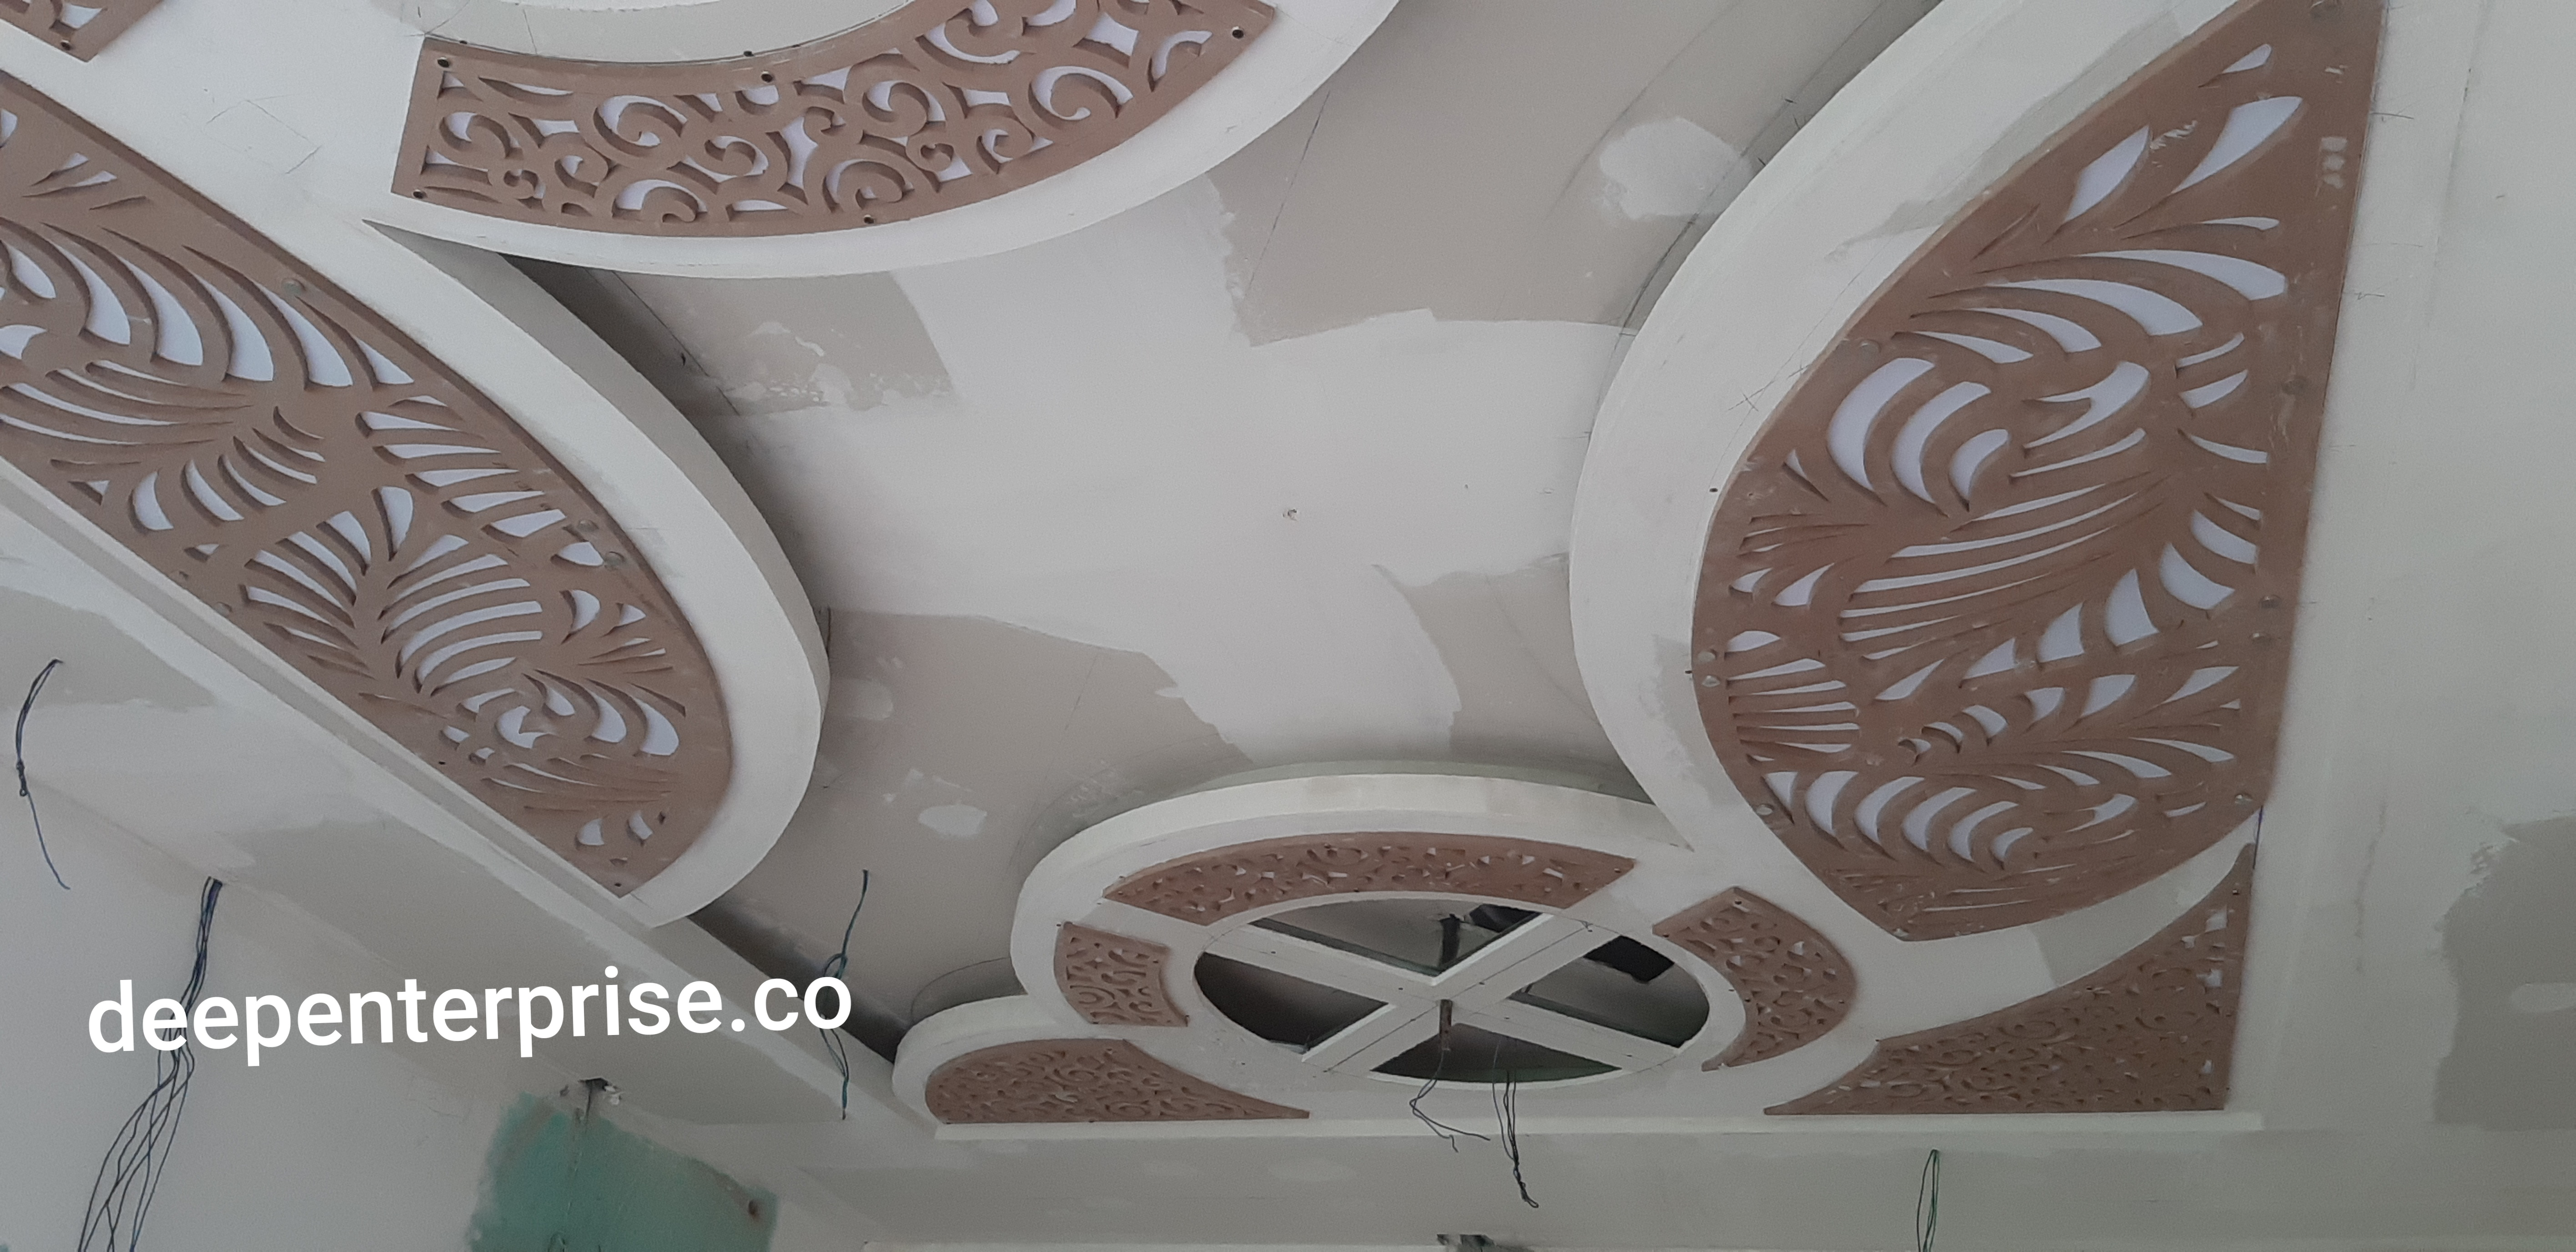 Drywall gypsum board false ceiling,  ceiling design, false ceiling, bedroom false ceiling